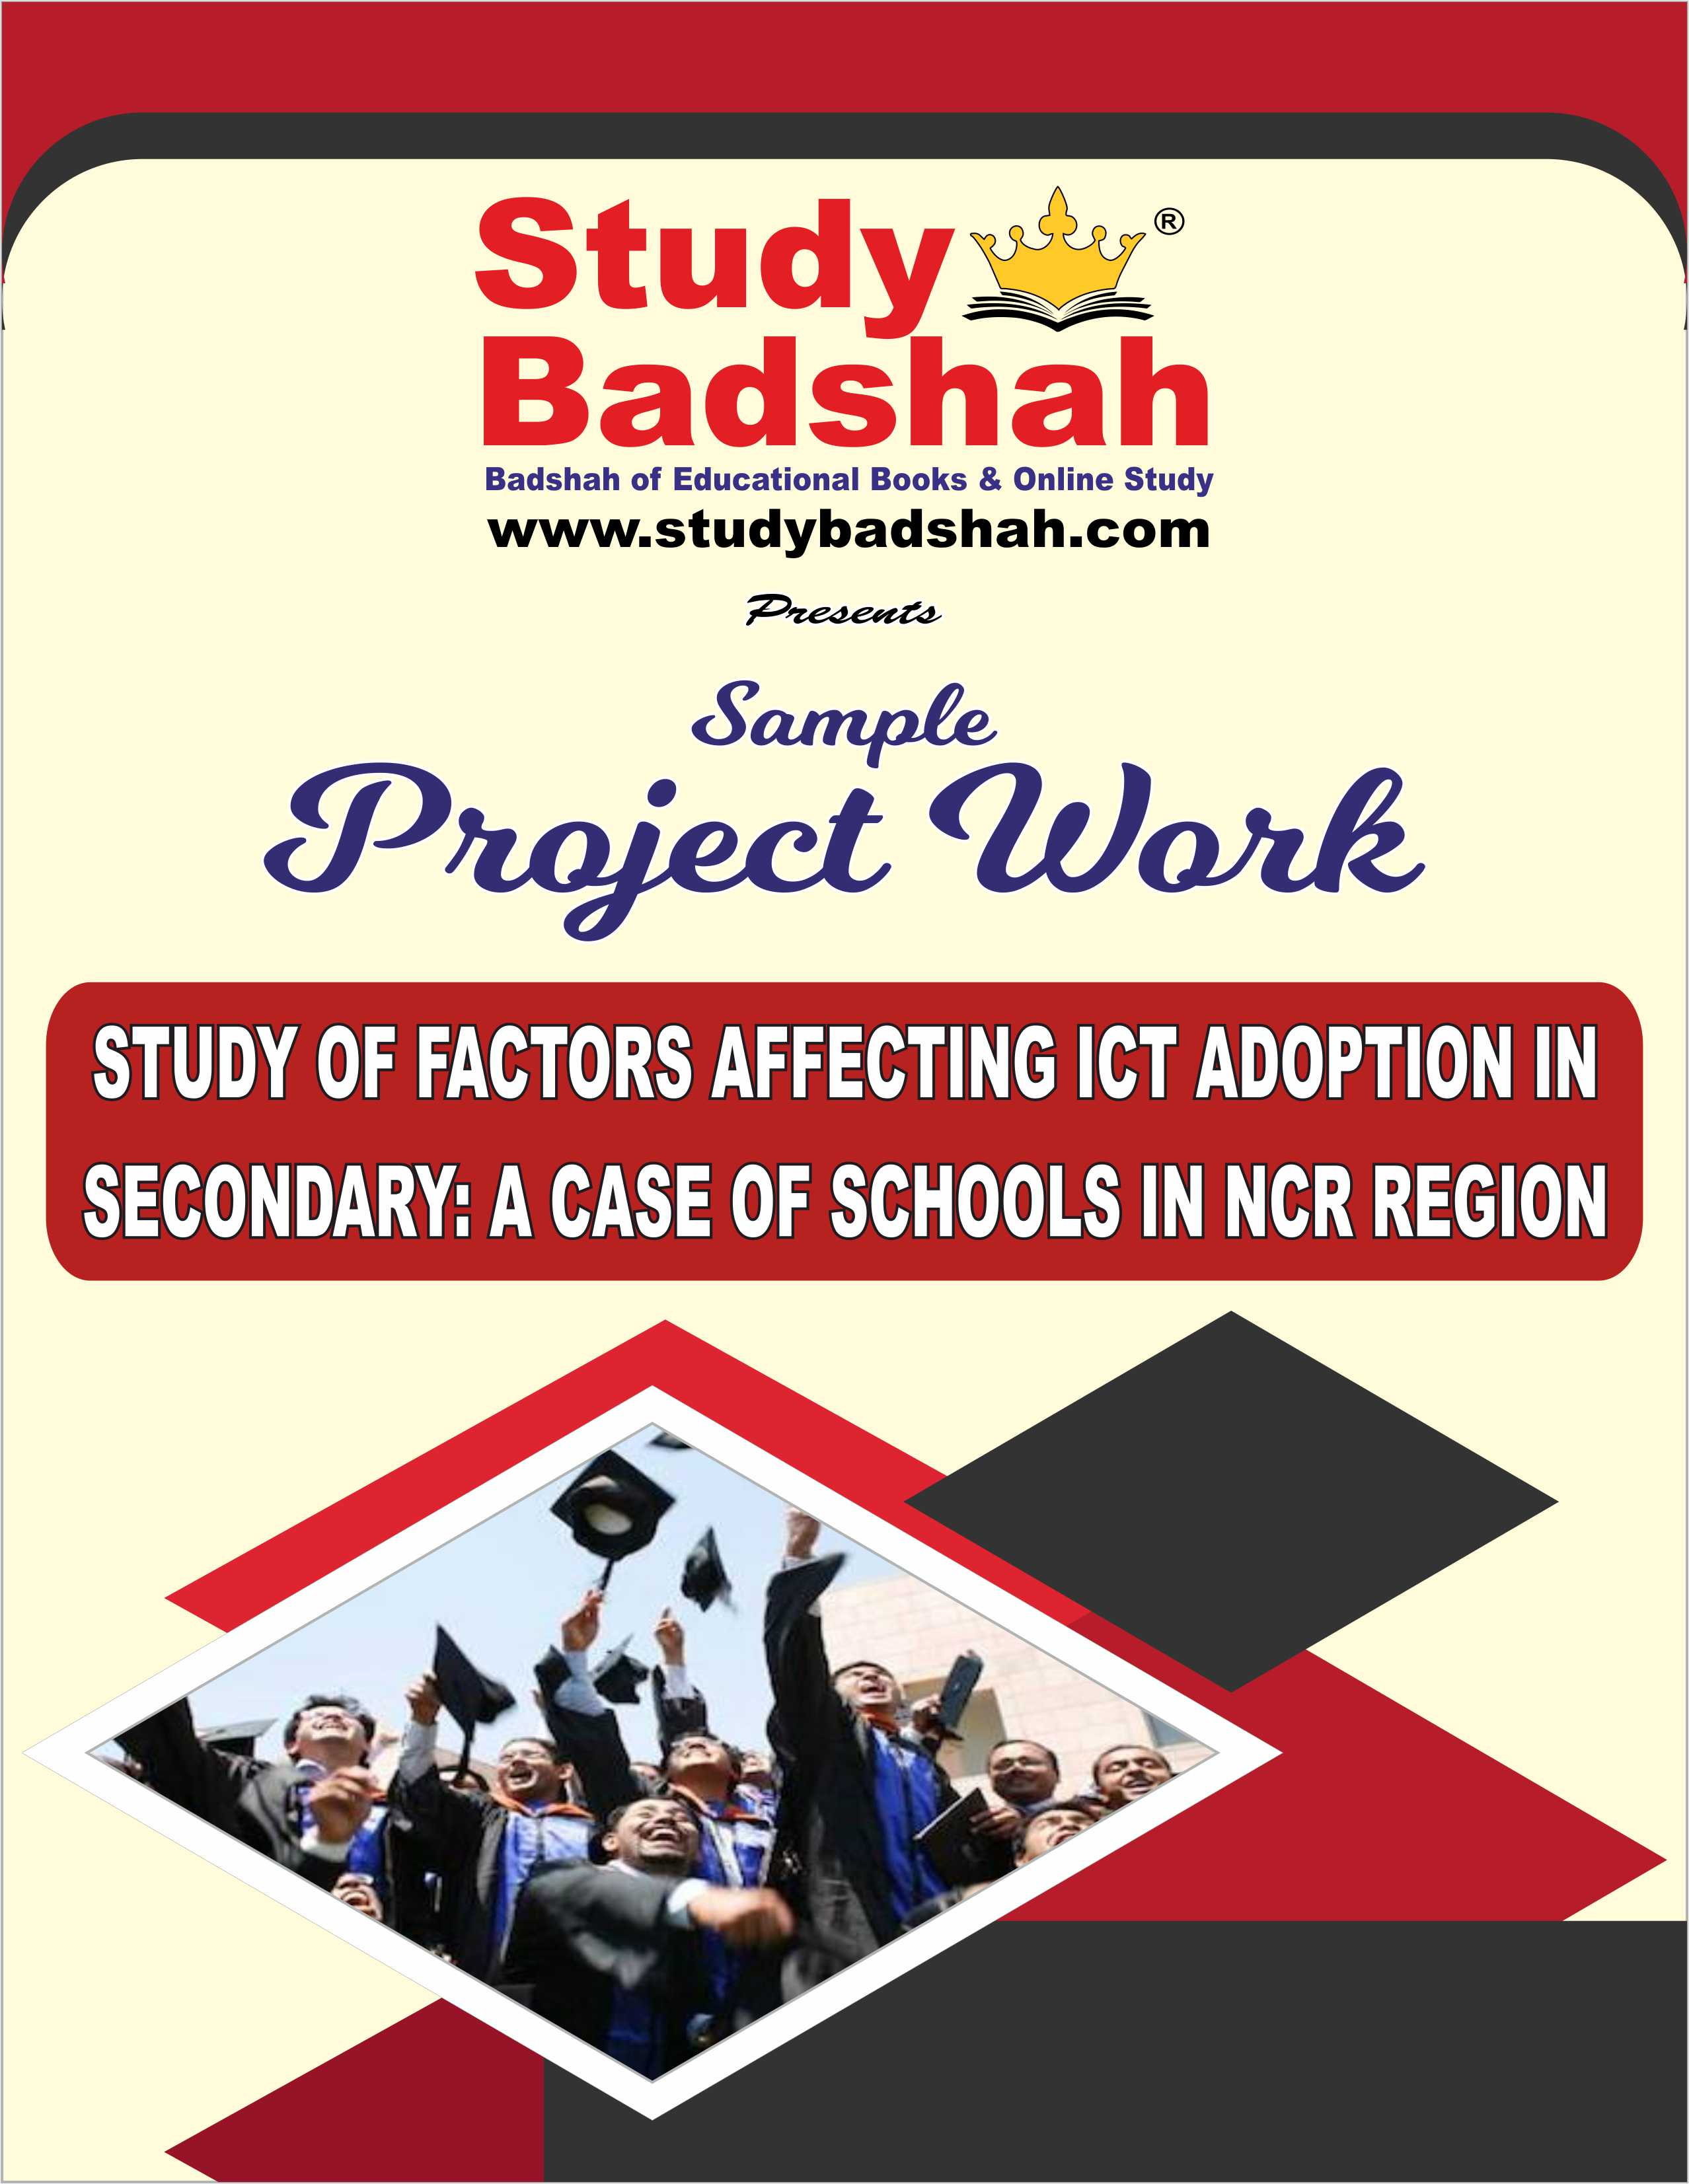 STUDY OF FACTORS AFFECTING ICT ADOPTION IN SECONDARY A CASE OF SCHOOLS IN NCR REGION